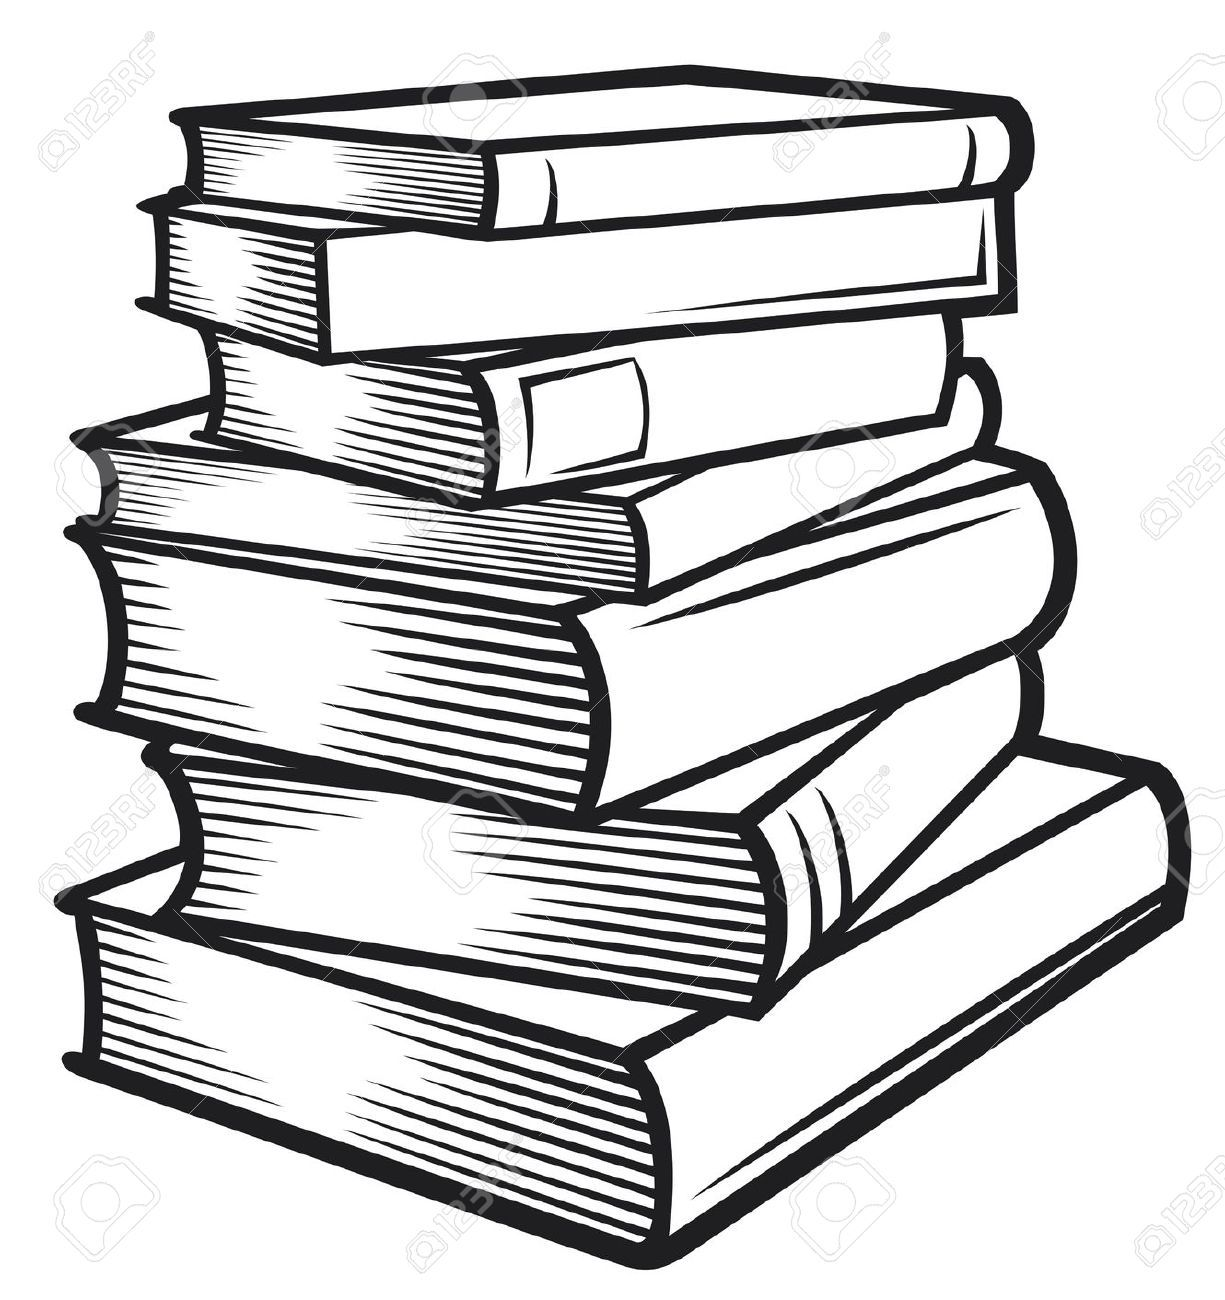 Tall stack of books clipart black and white fonts and templates jpg